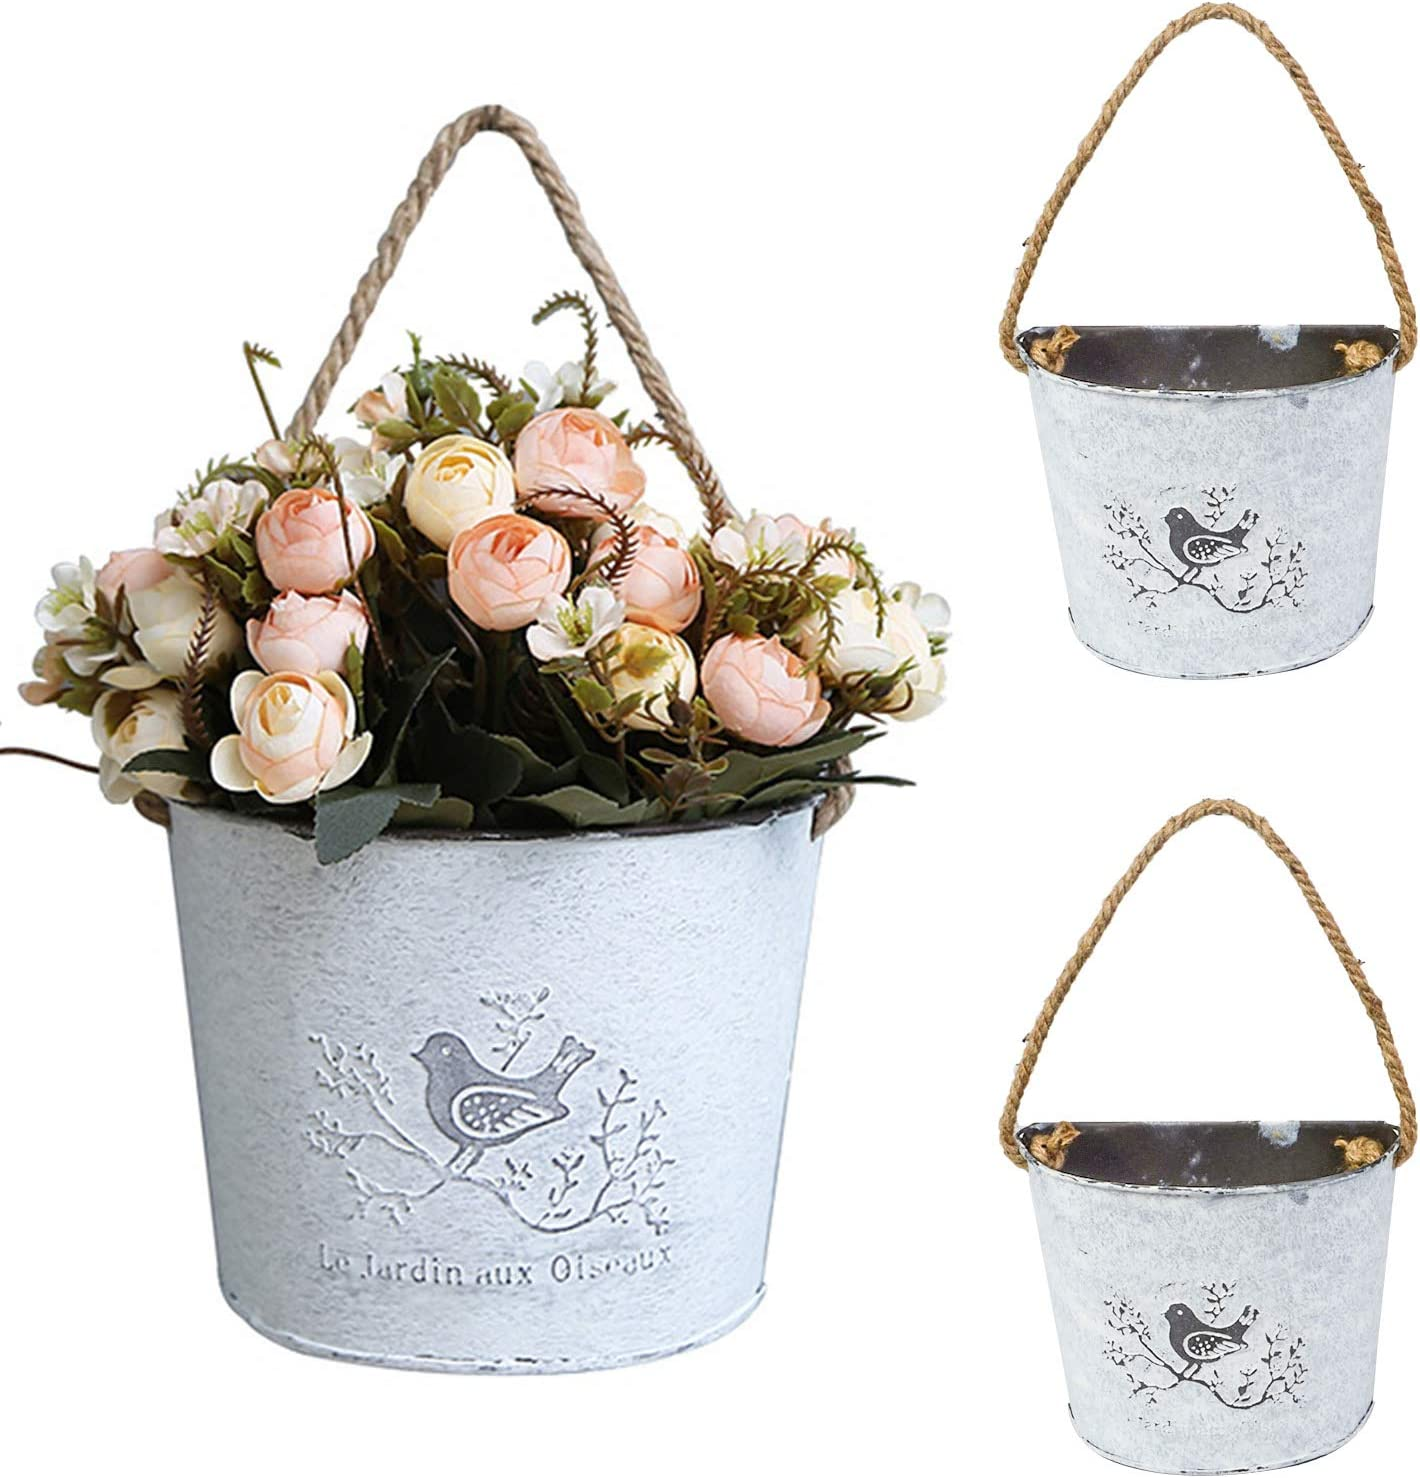 3sets Hanging Flower Basket - Galvanized Wall Planters Decor Hanging Holder/Vase for Farmhouse Decoration - Half Round Shape Flower Pots for Wall Mounted Indoor Outdoor Home Garden Decor